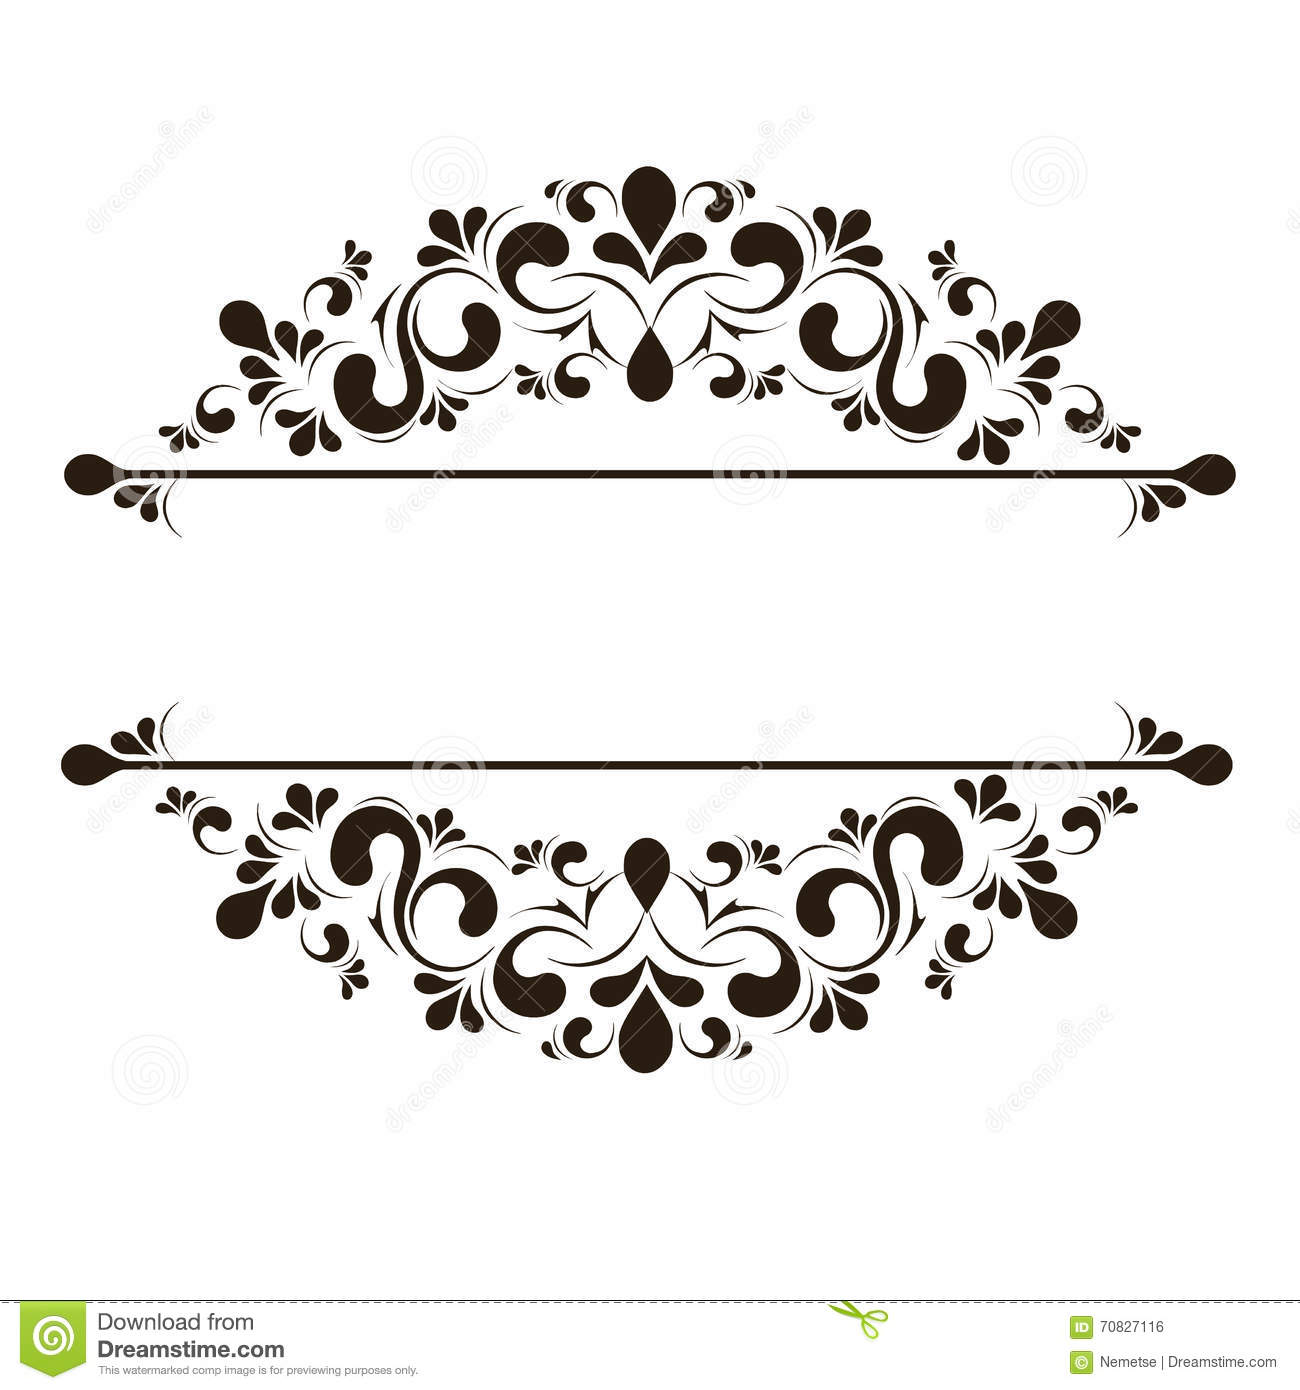 design elements for page border stock vector image 70827116 Wedding Invitation Page Borders royalty free vector download design elements for page border wedding invitation page borders